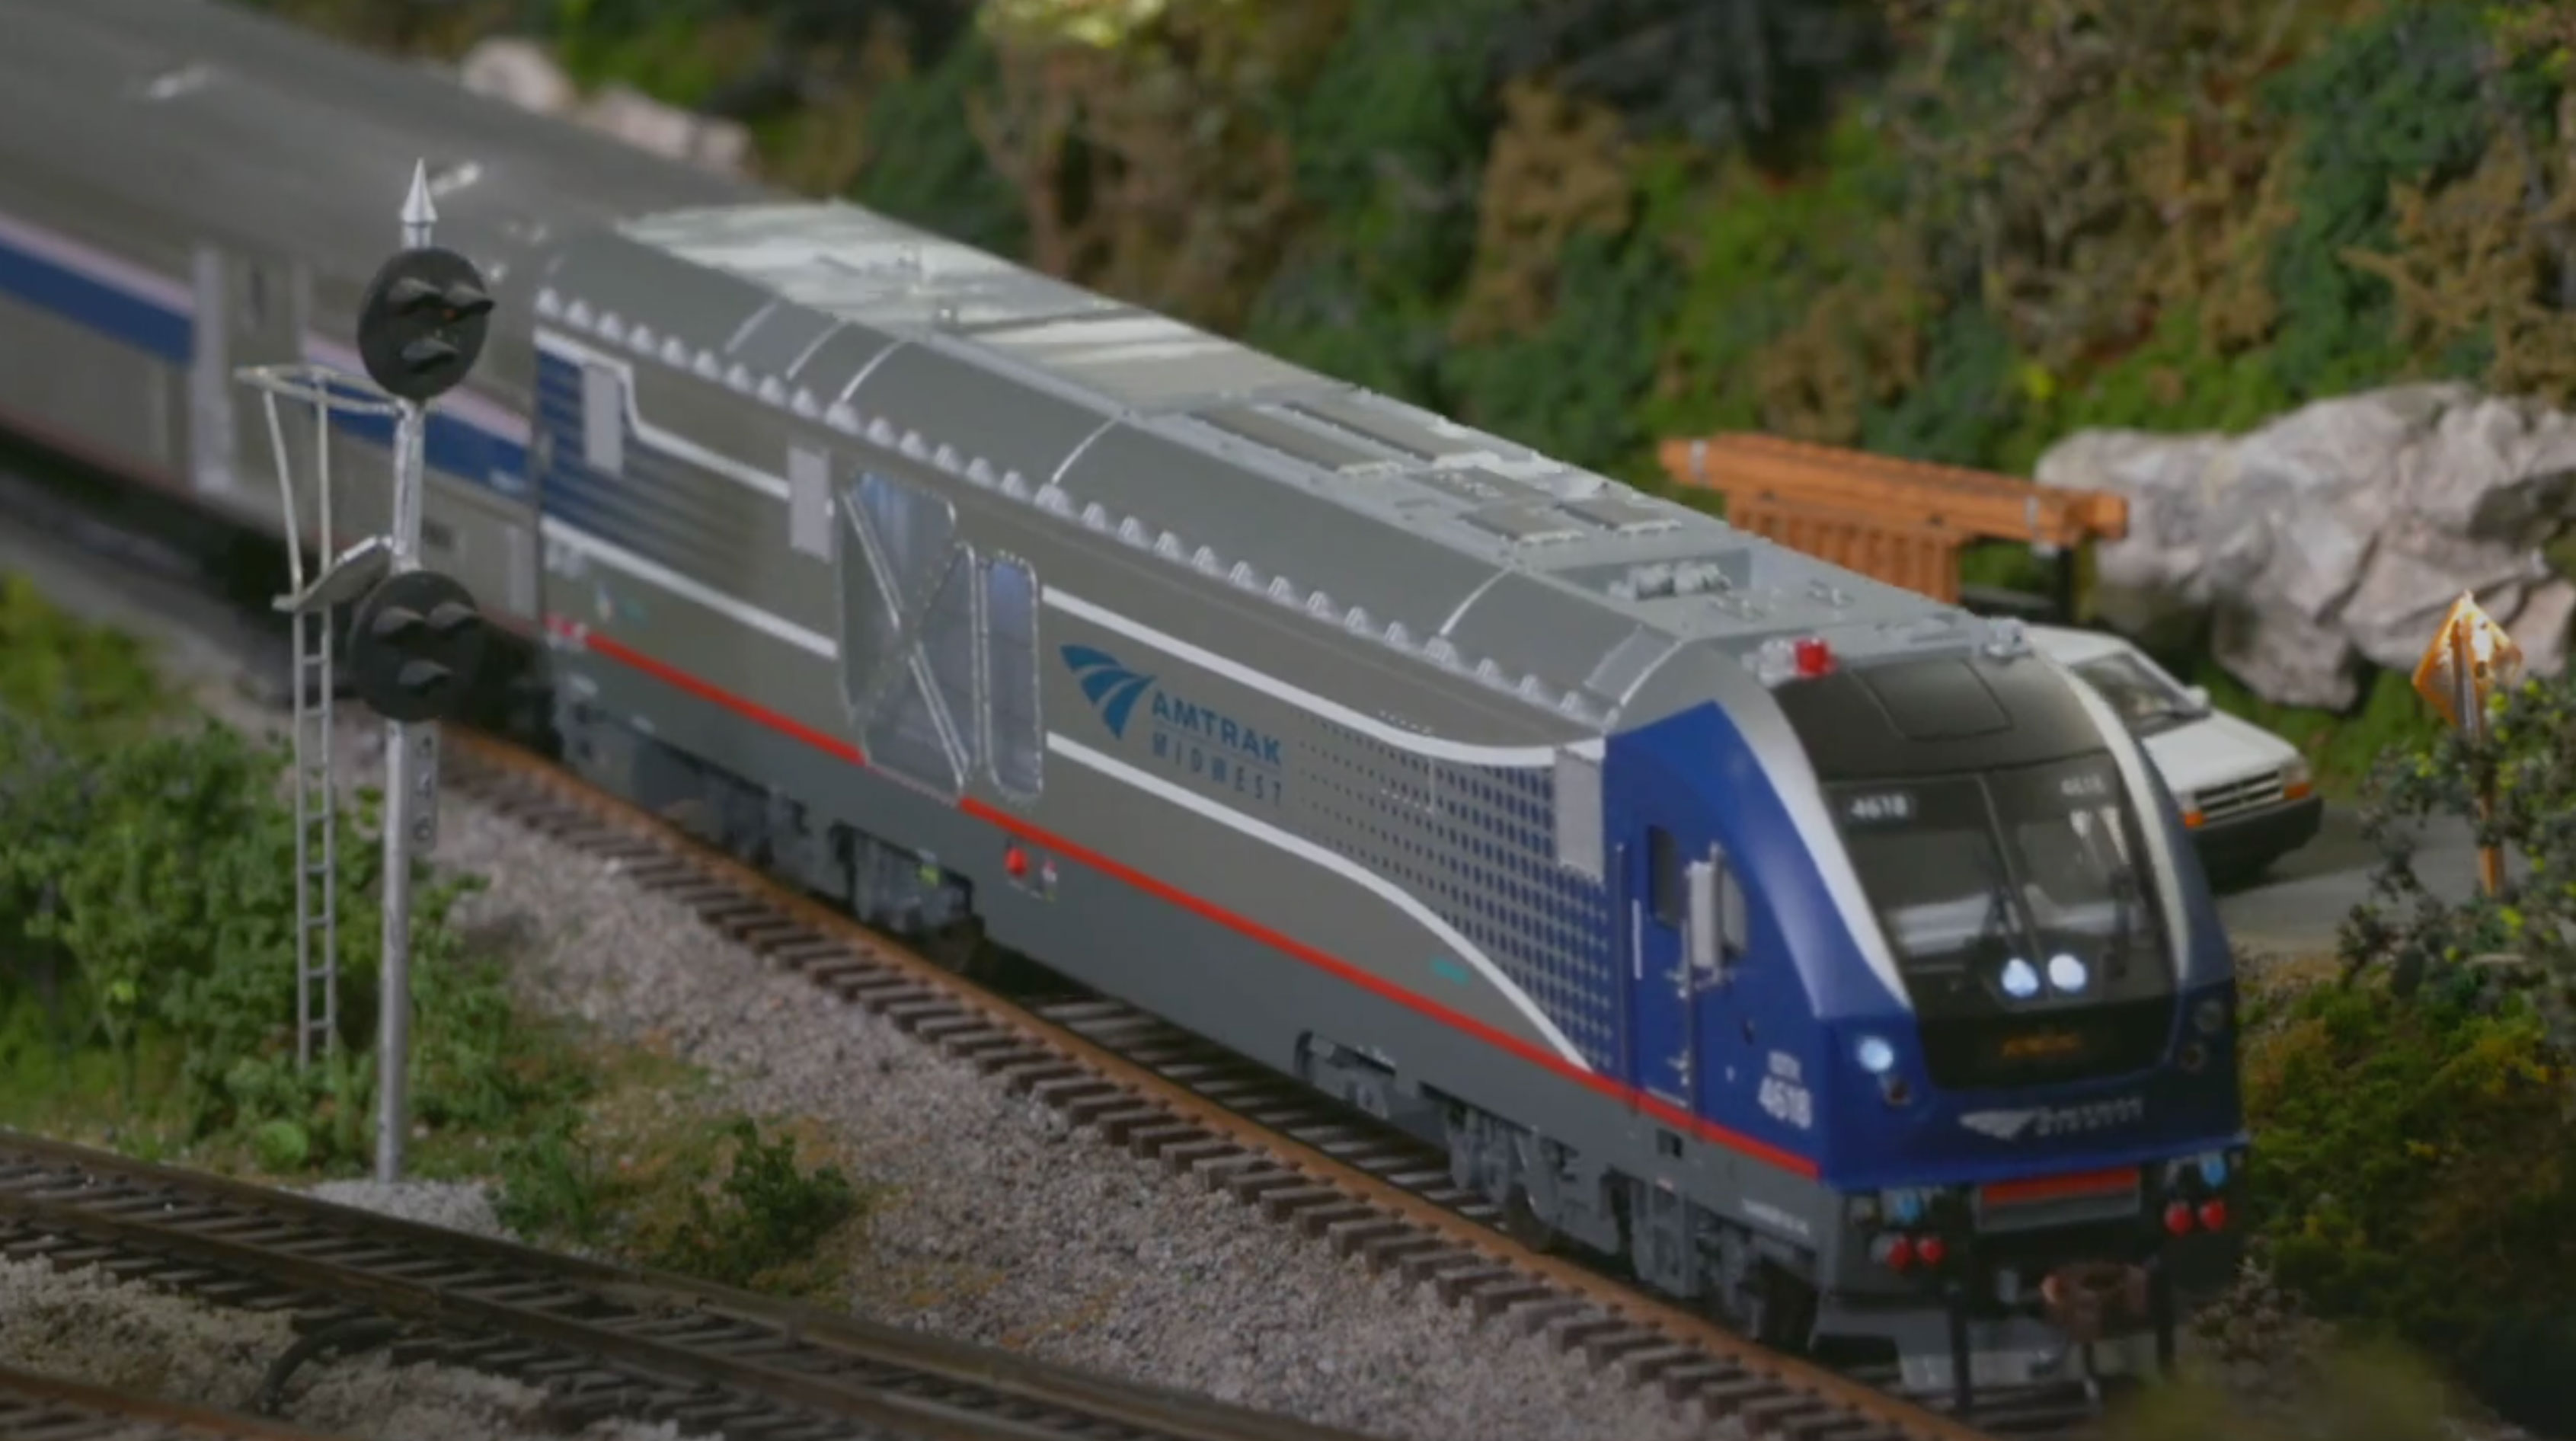 The Bachmann HO Scale Siemens SC-44 Charger